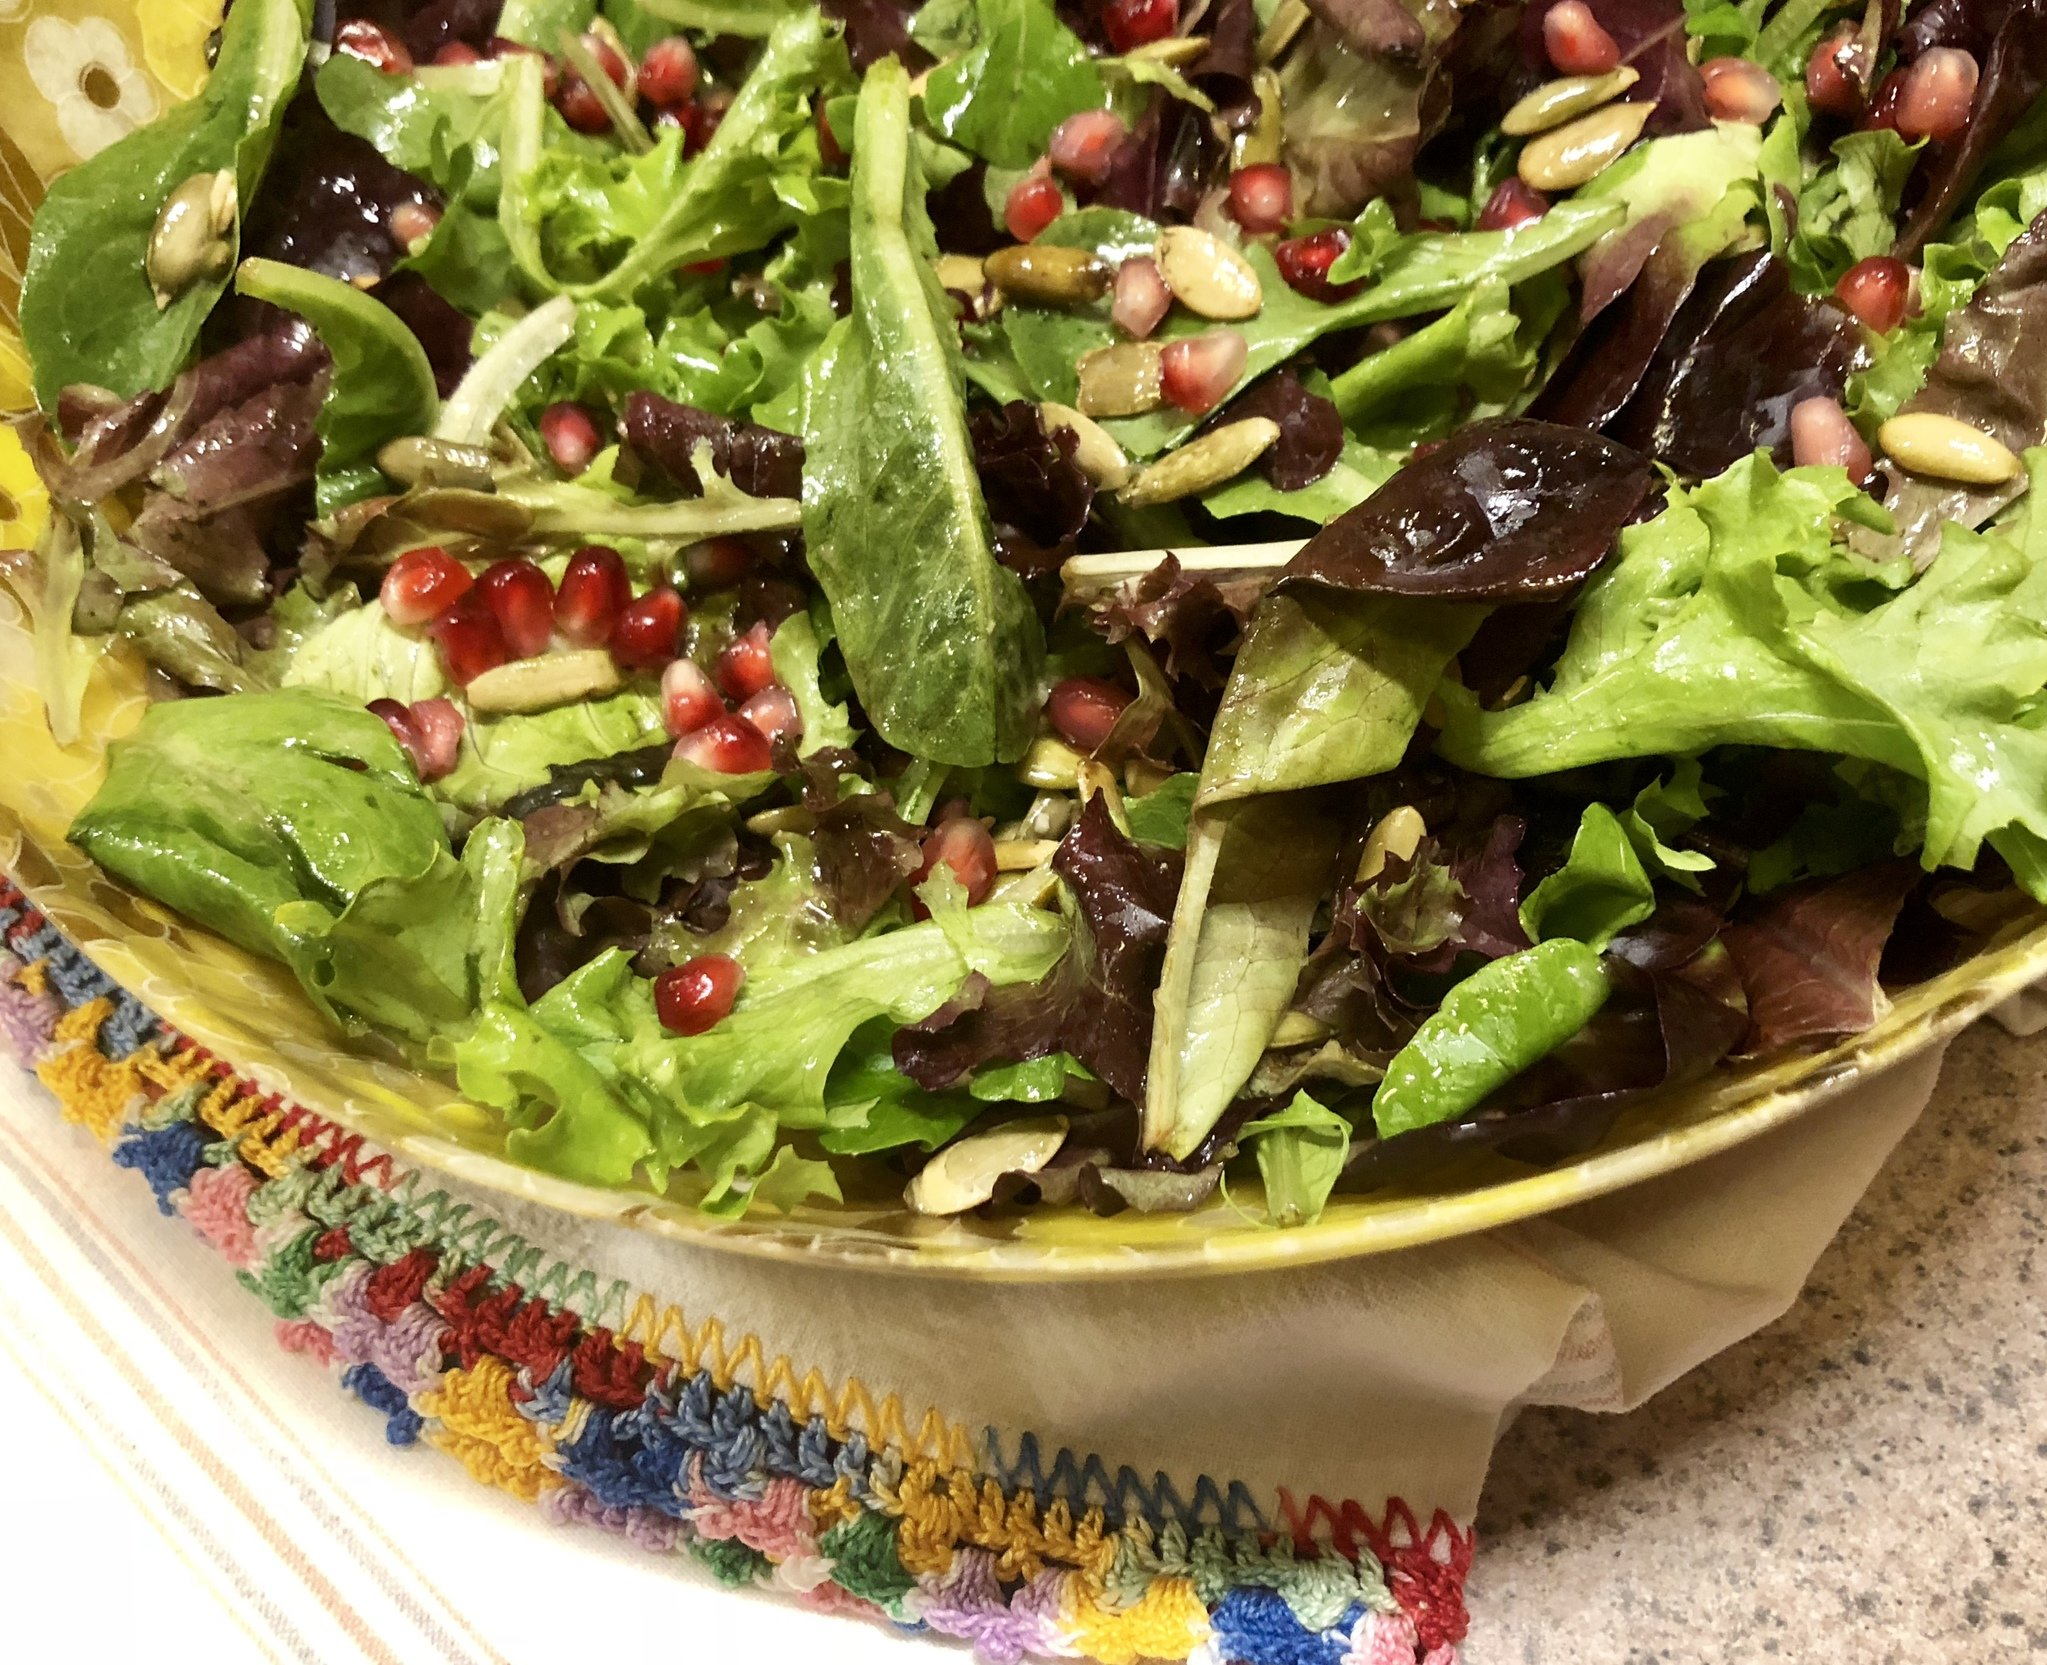 Tart and sweet, this dressing kicks salad up a couple of notches ...